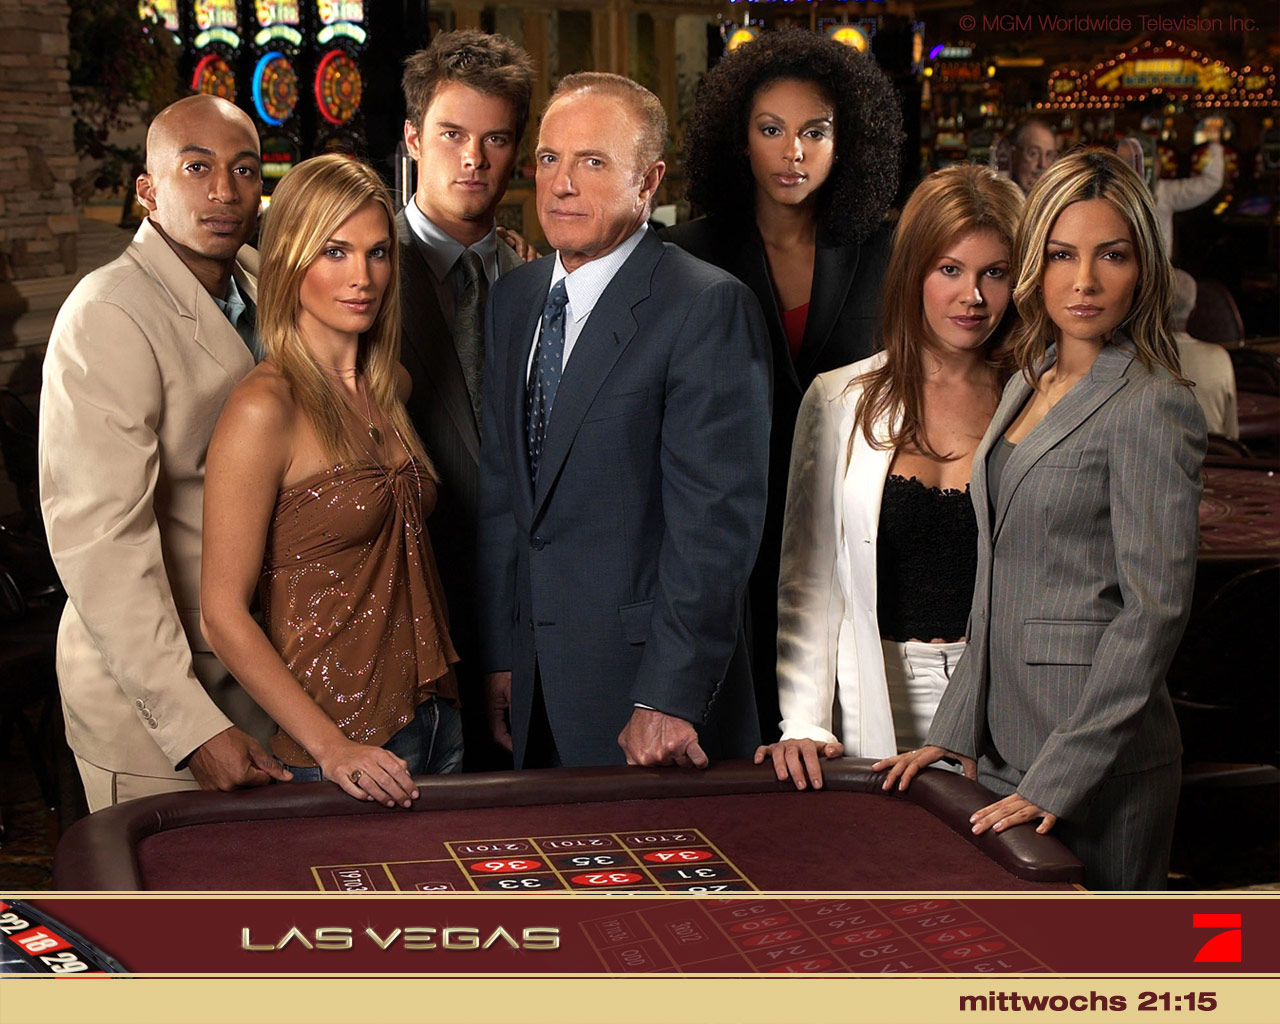 vegas casino tv series